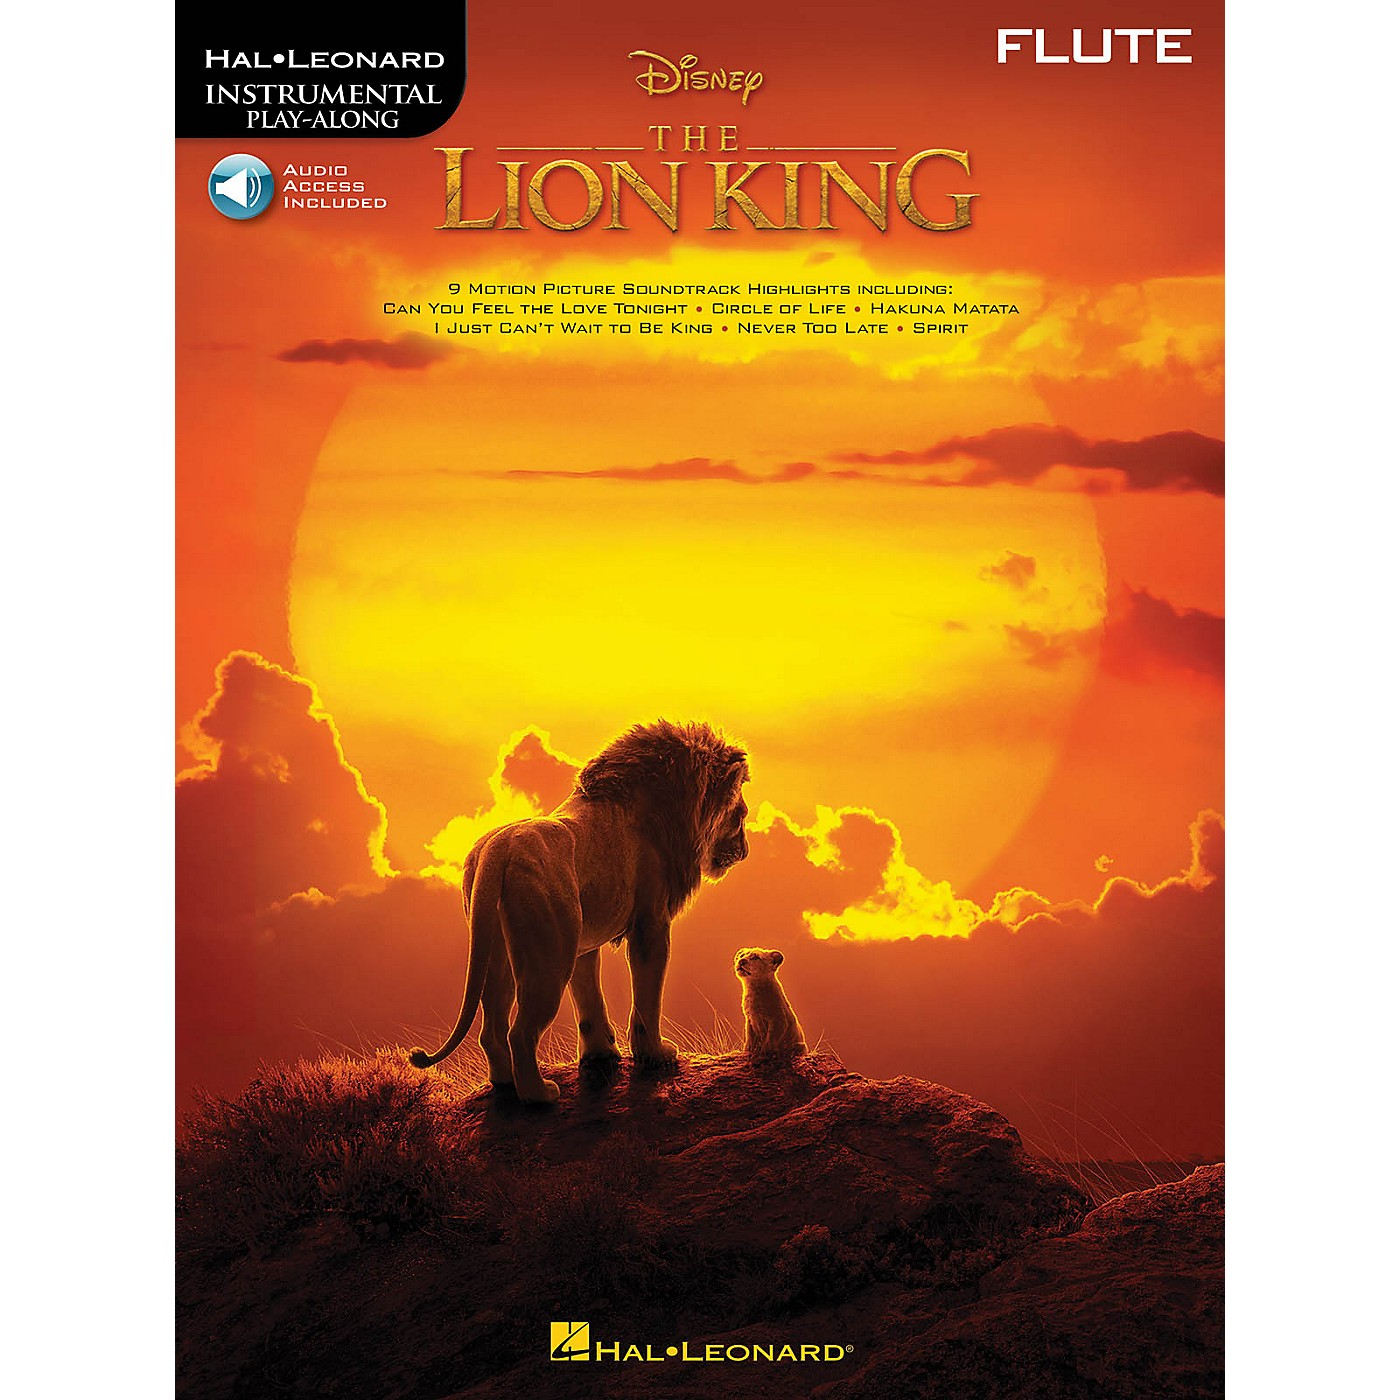 Hal Leonard The Lion King for Flute Instrumental Play-Along Book/Audio Online thumbnail